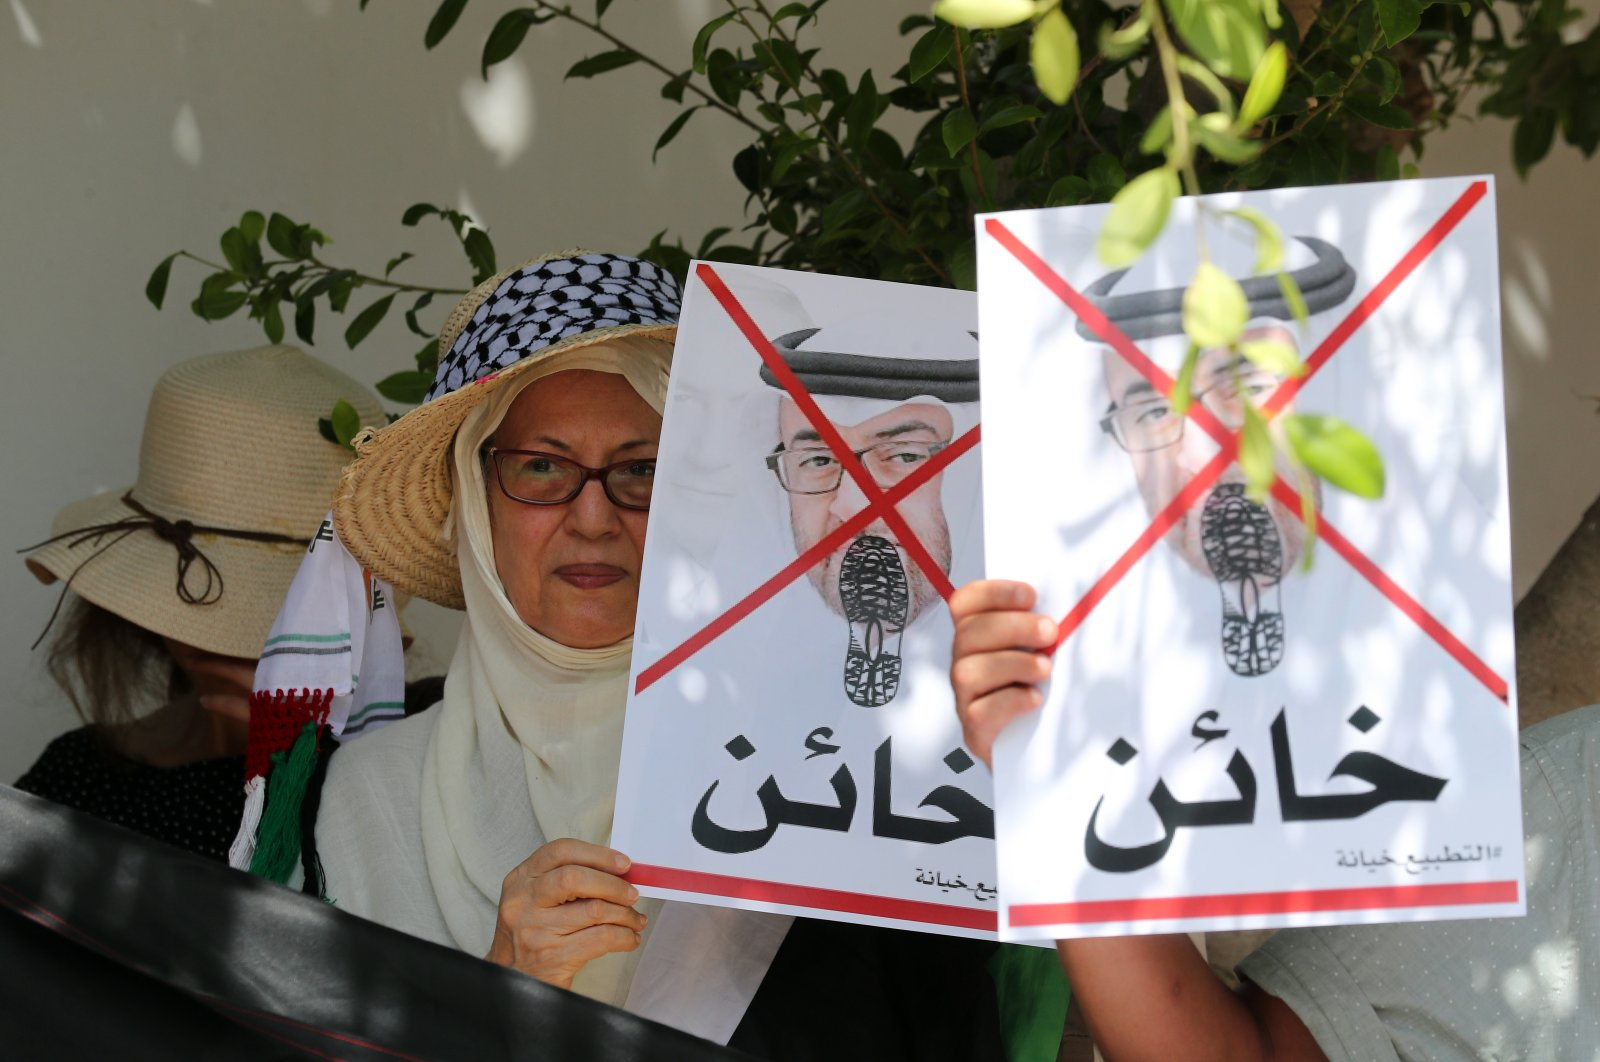 """Tunisian protesters hold crossed out portraits of Abu Dhabi Crown Prince Sheikh Mohammed bin Zayed Al Nahyan with the word """"traitor"""" written underneath it, during a protest against the leaders of the United Arab Emirates after forming diplomatic relations with Israel, in front of the UAE embassy in Tunis, Tunisia, Aug. 18, 2020. (EPA Photo)"""